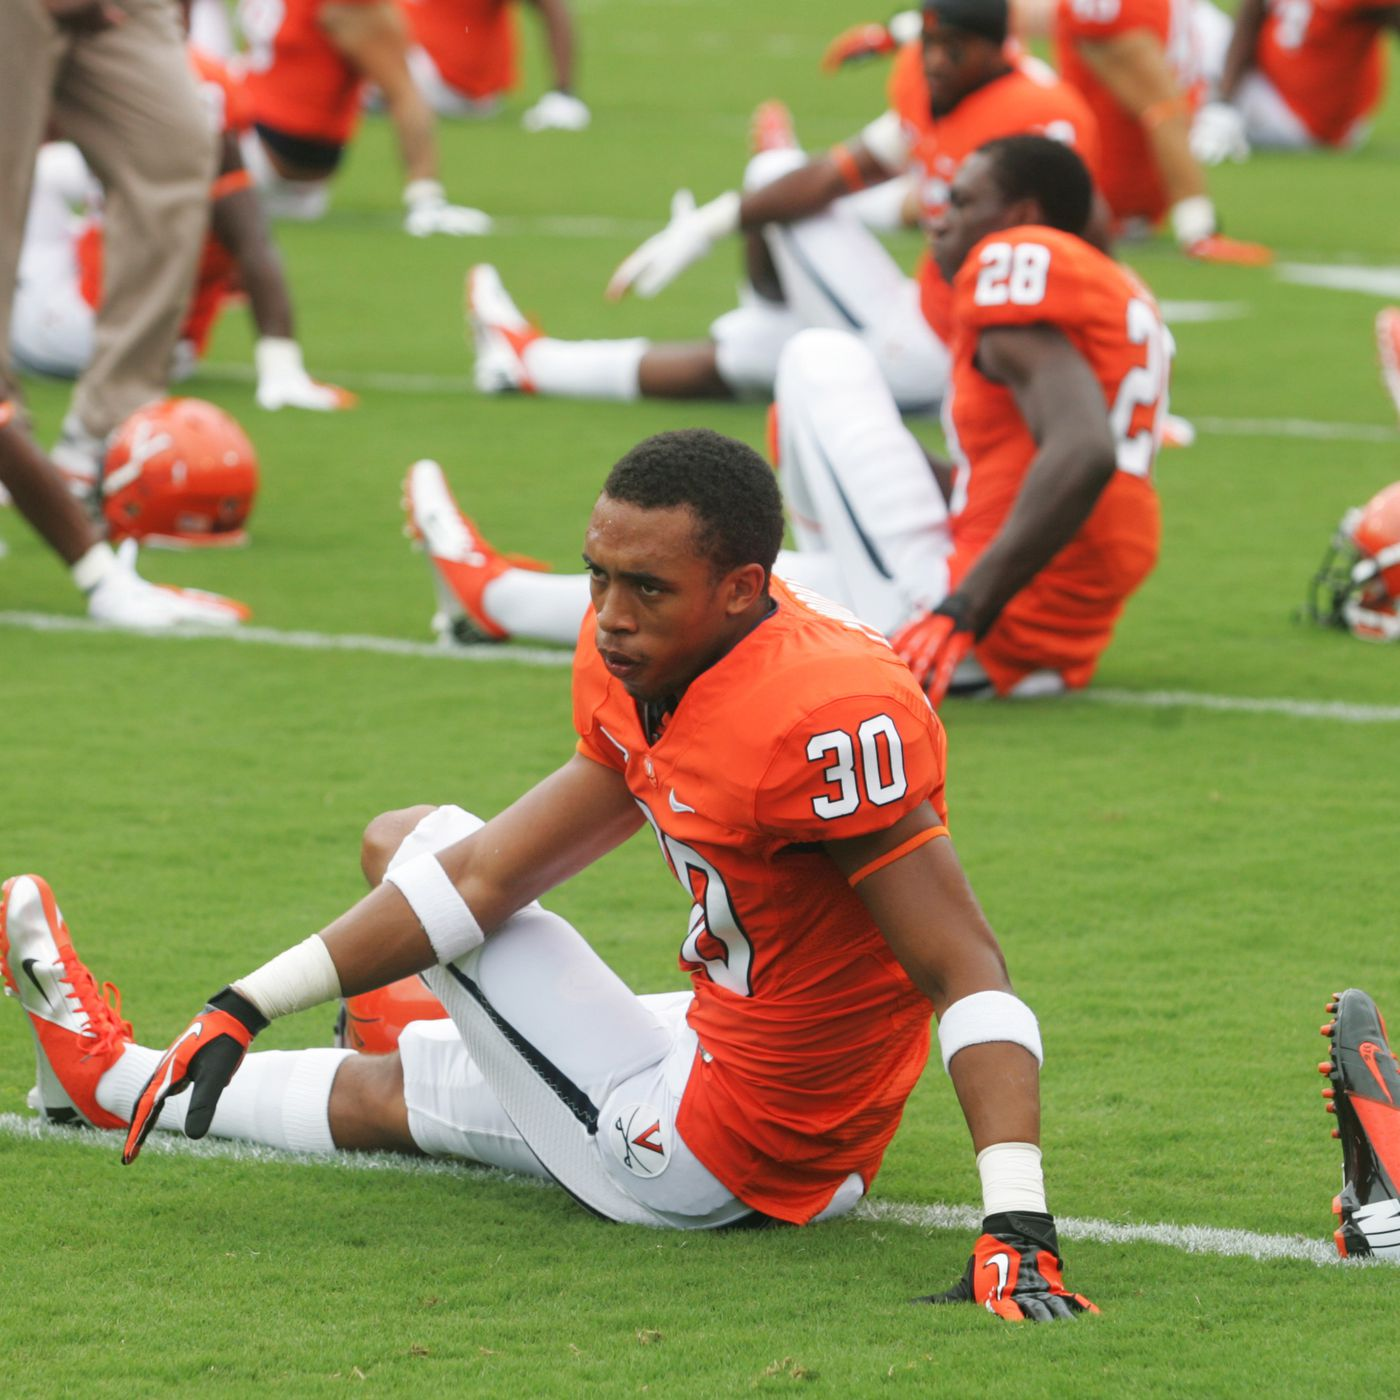 newest 67951 fba03 2013 Virginia Football Roster Profile: C.J. Moore ...